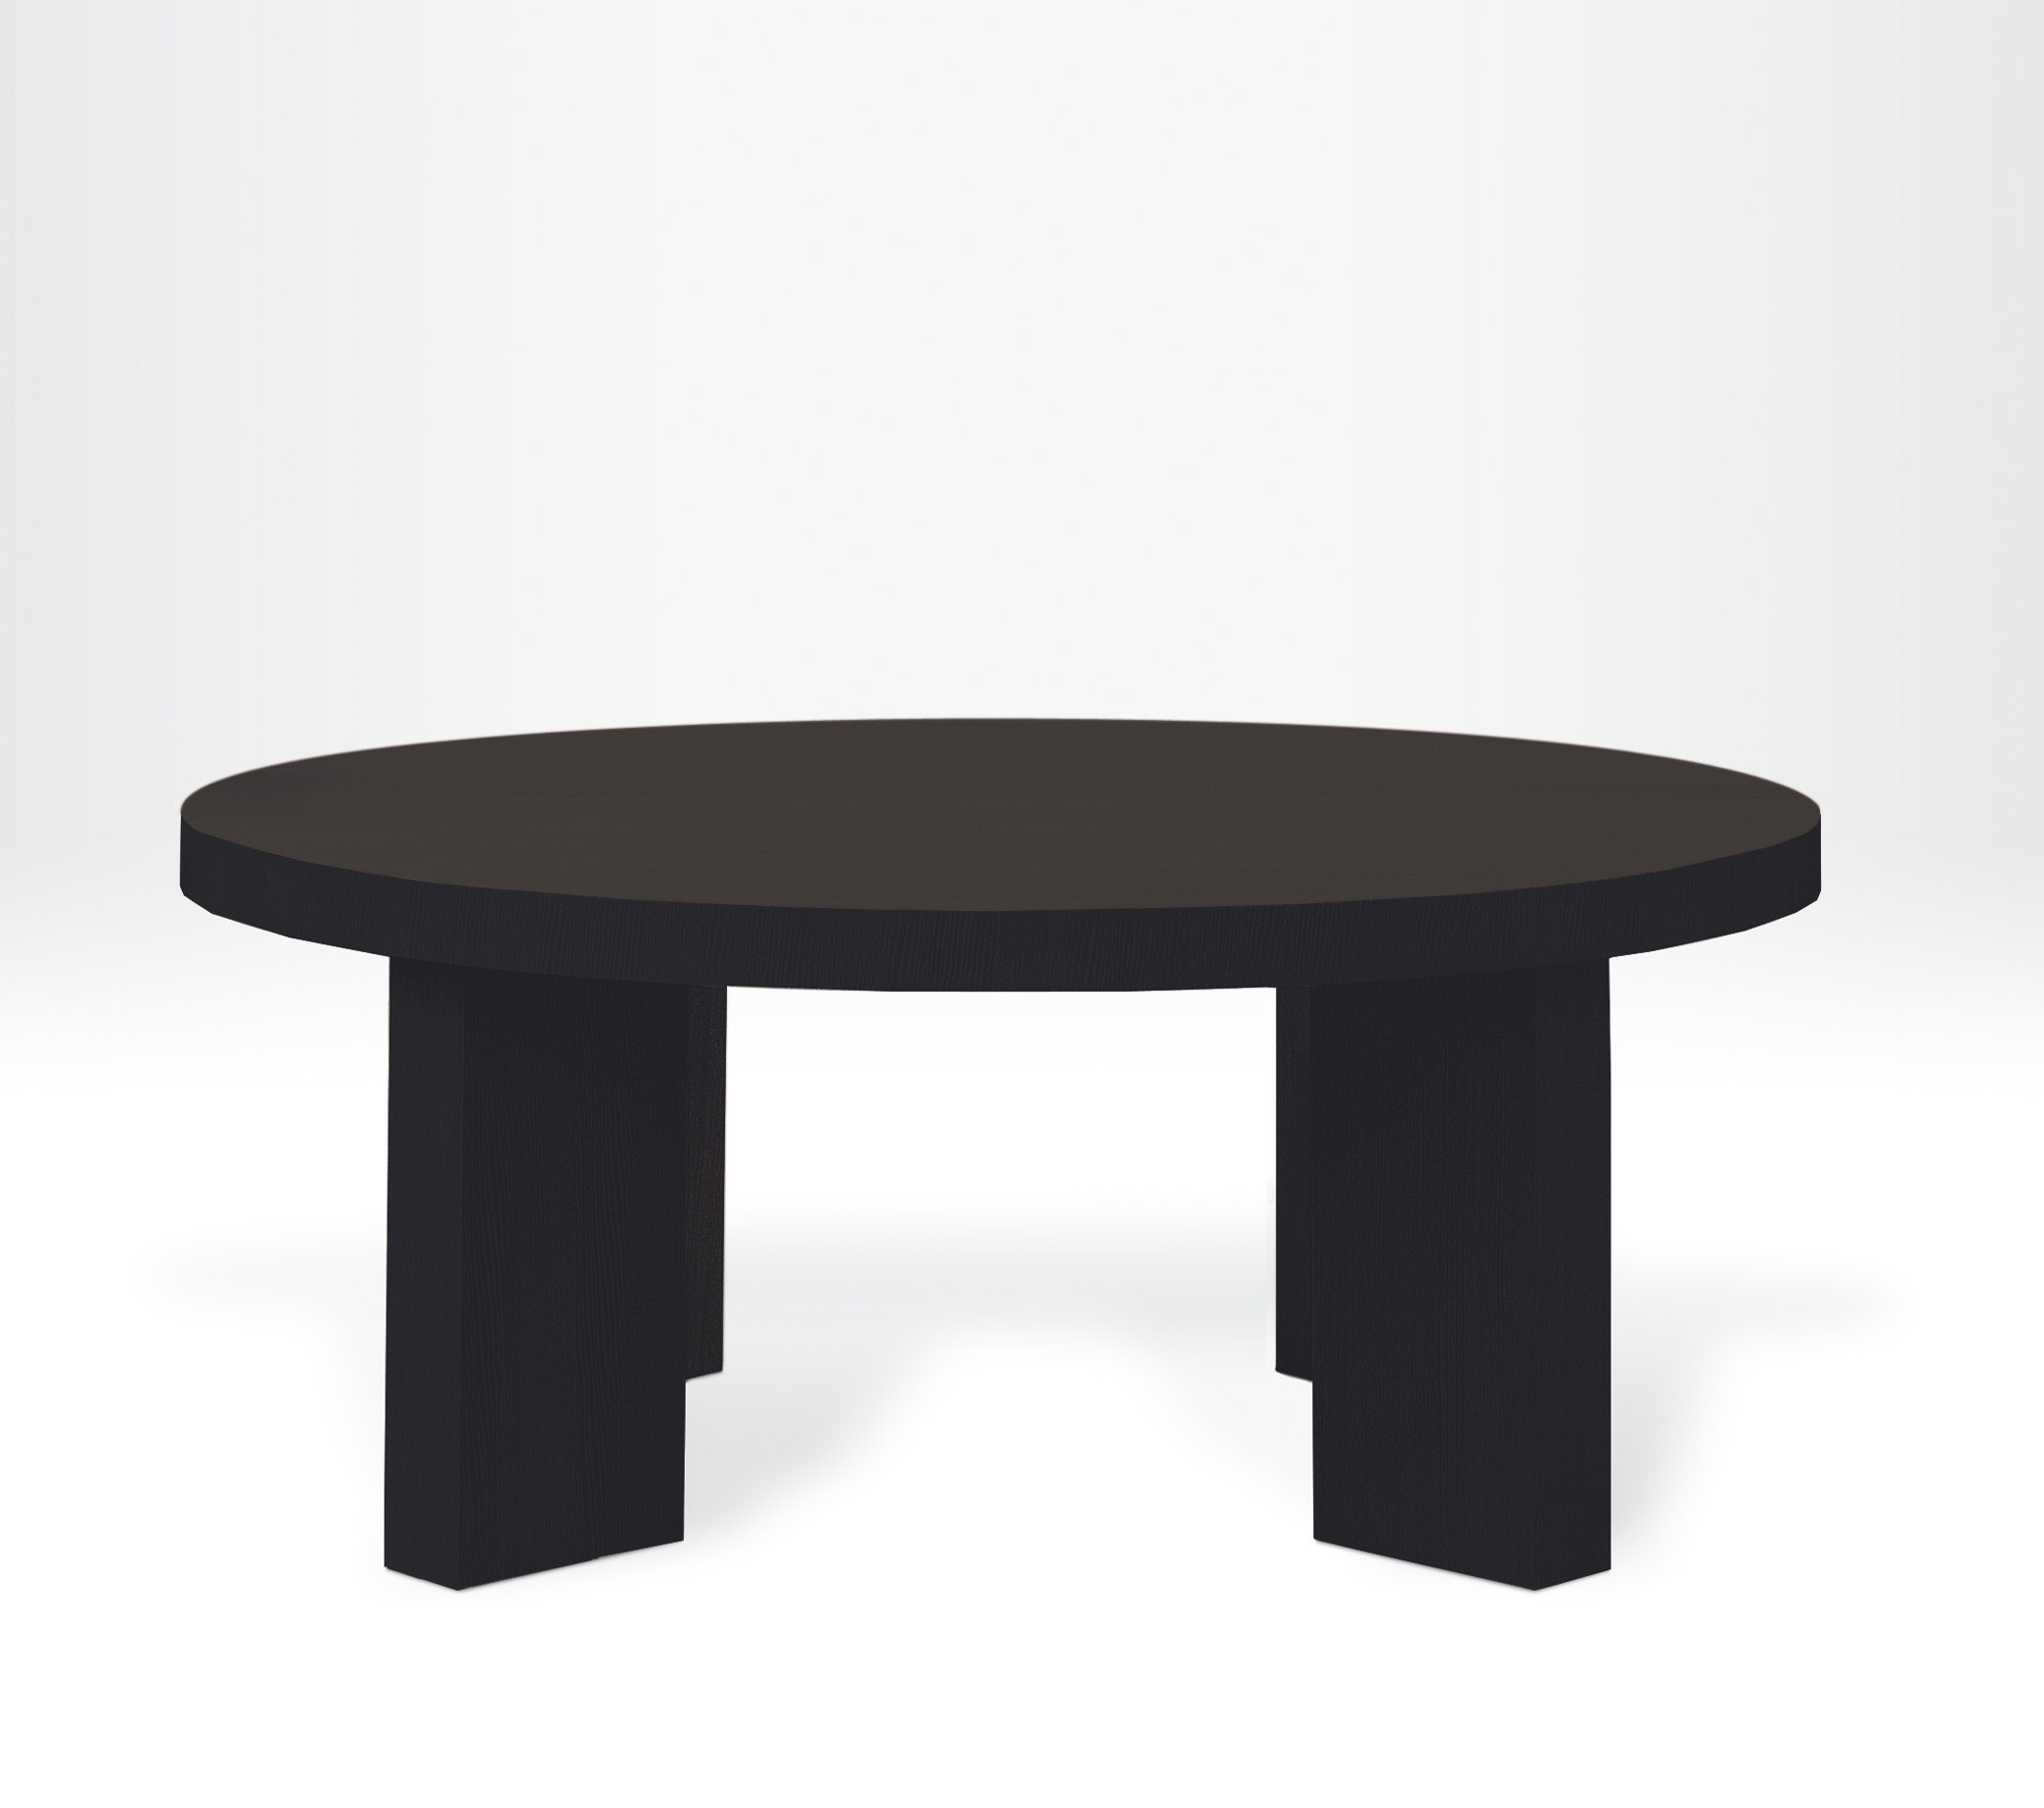 New York Dining Tables Within Famous Dining Table New York Round Shape, Armani Casa – Luxury Furniture Mr (View 17 of 25)